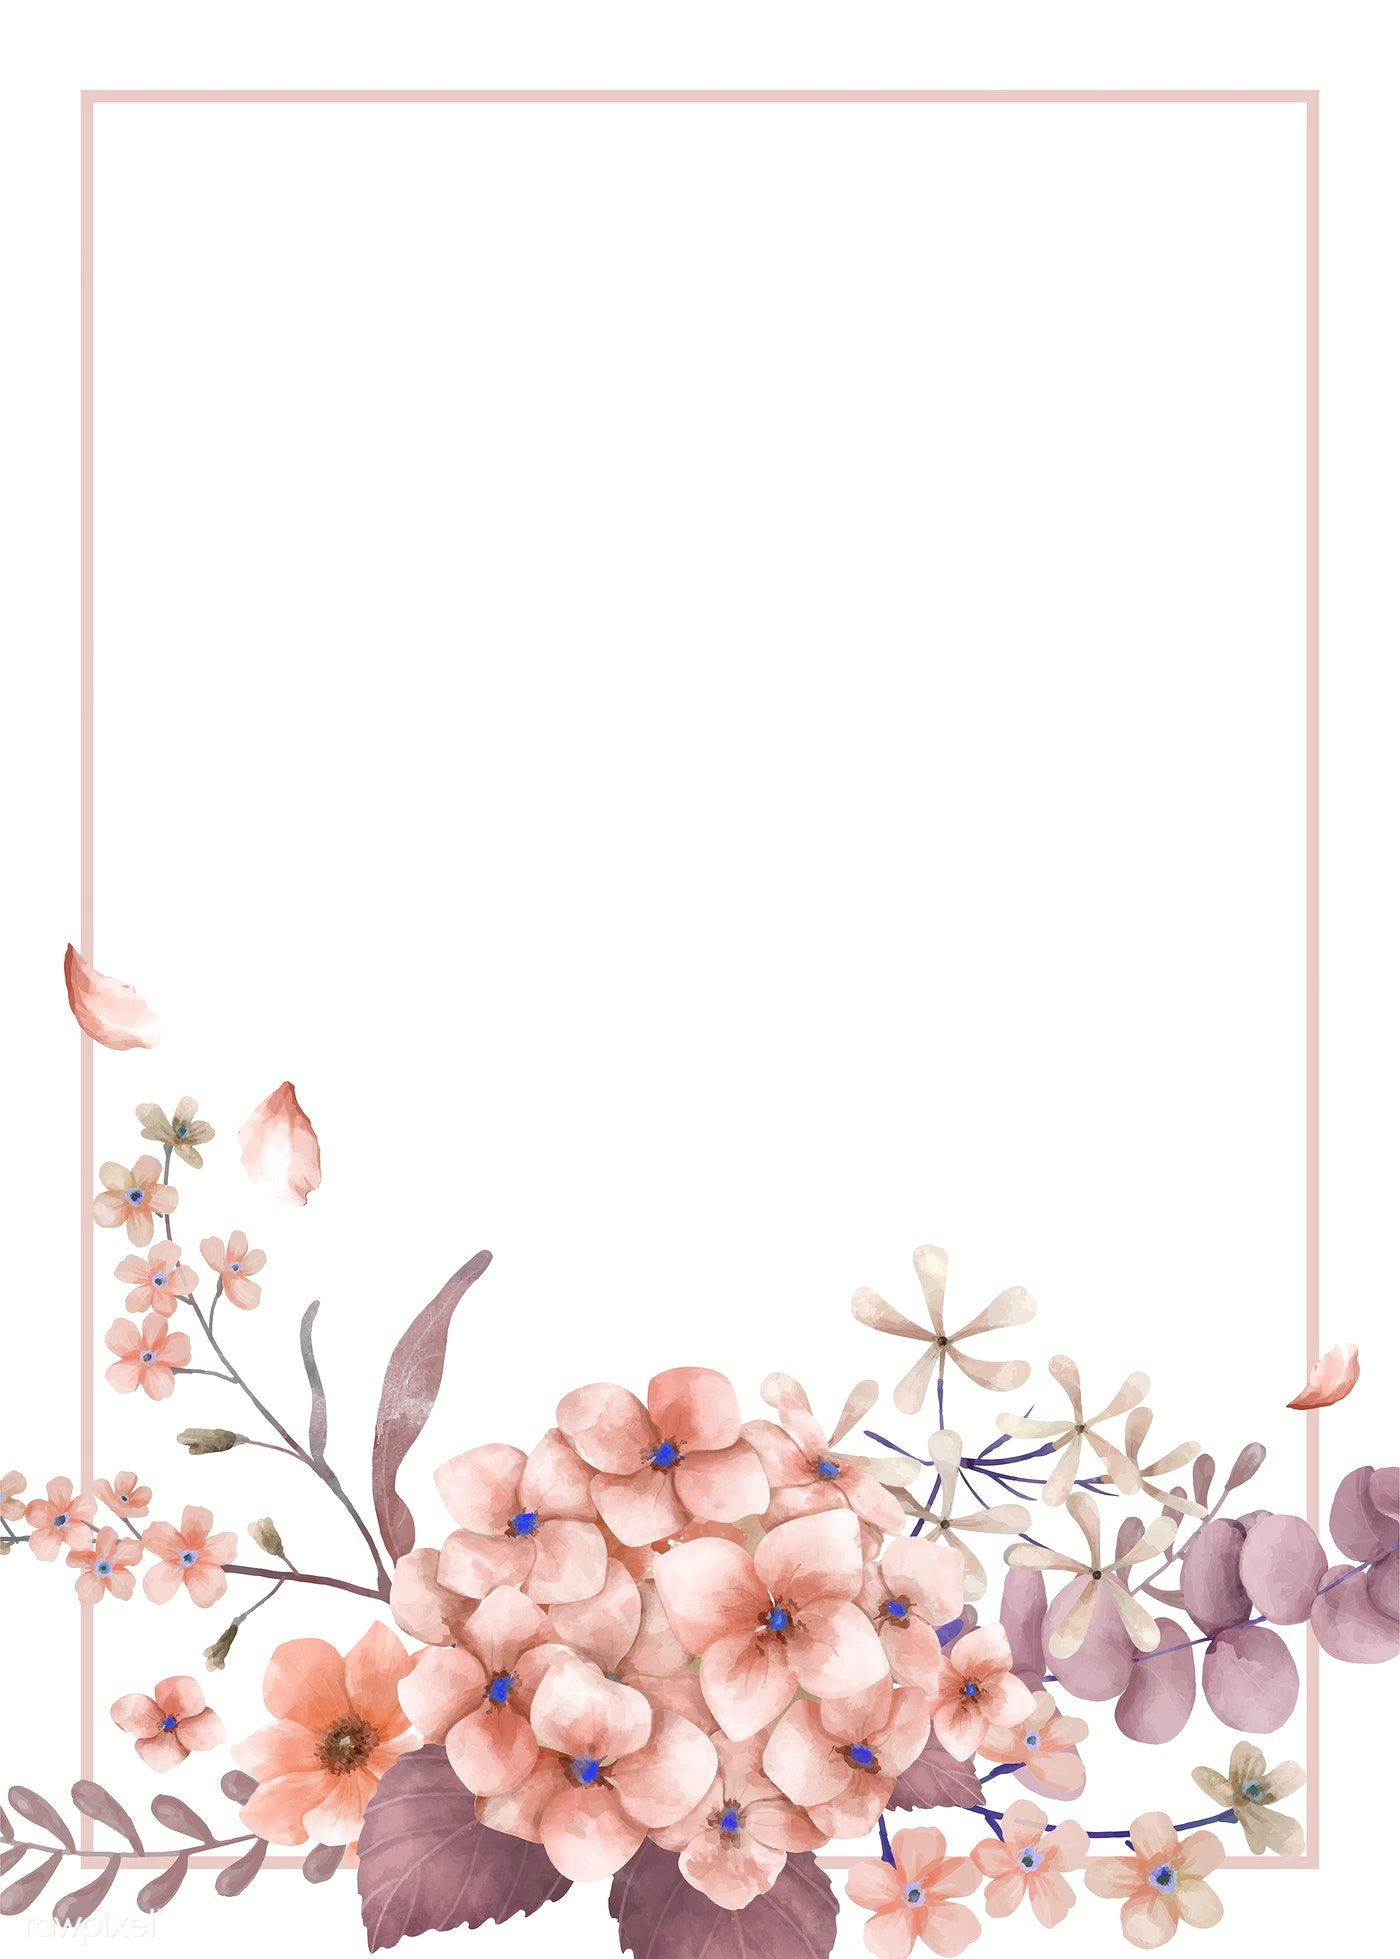 Download Premium Vector Of Greetings Card With Pink And Floral